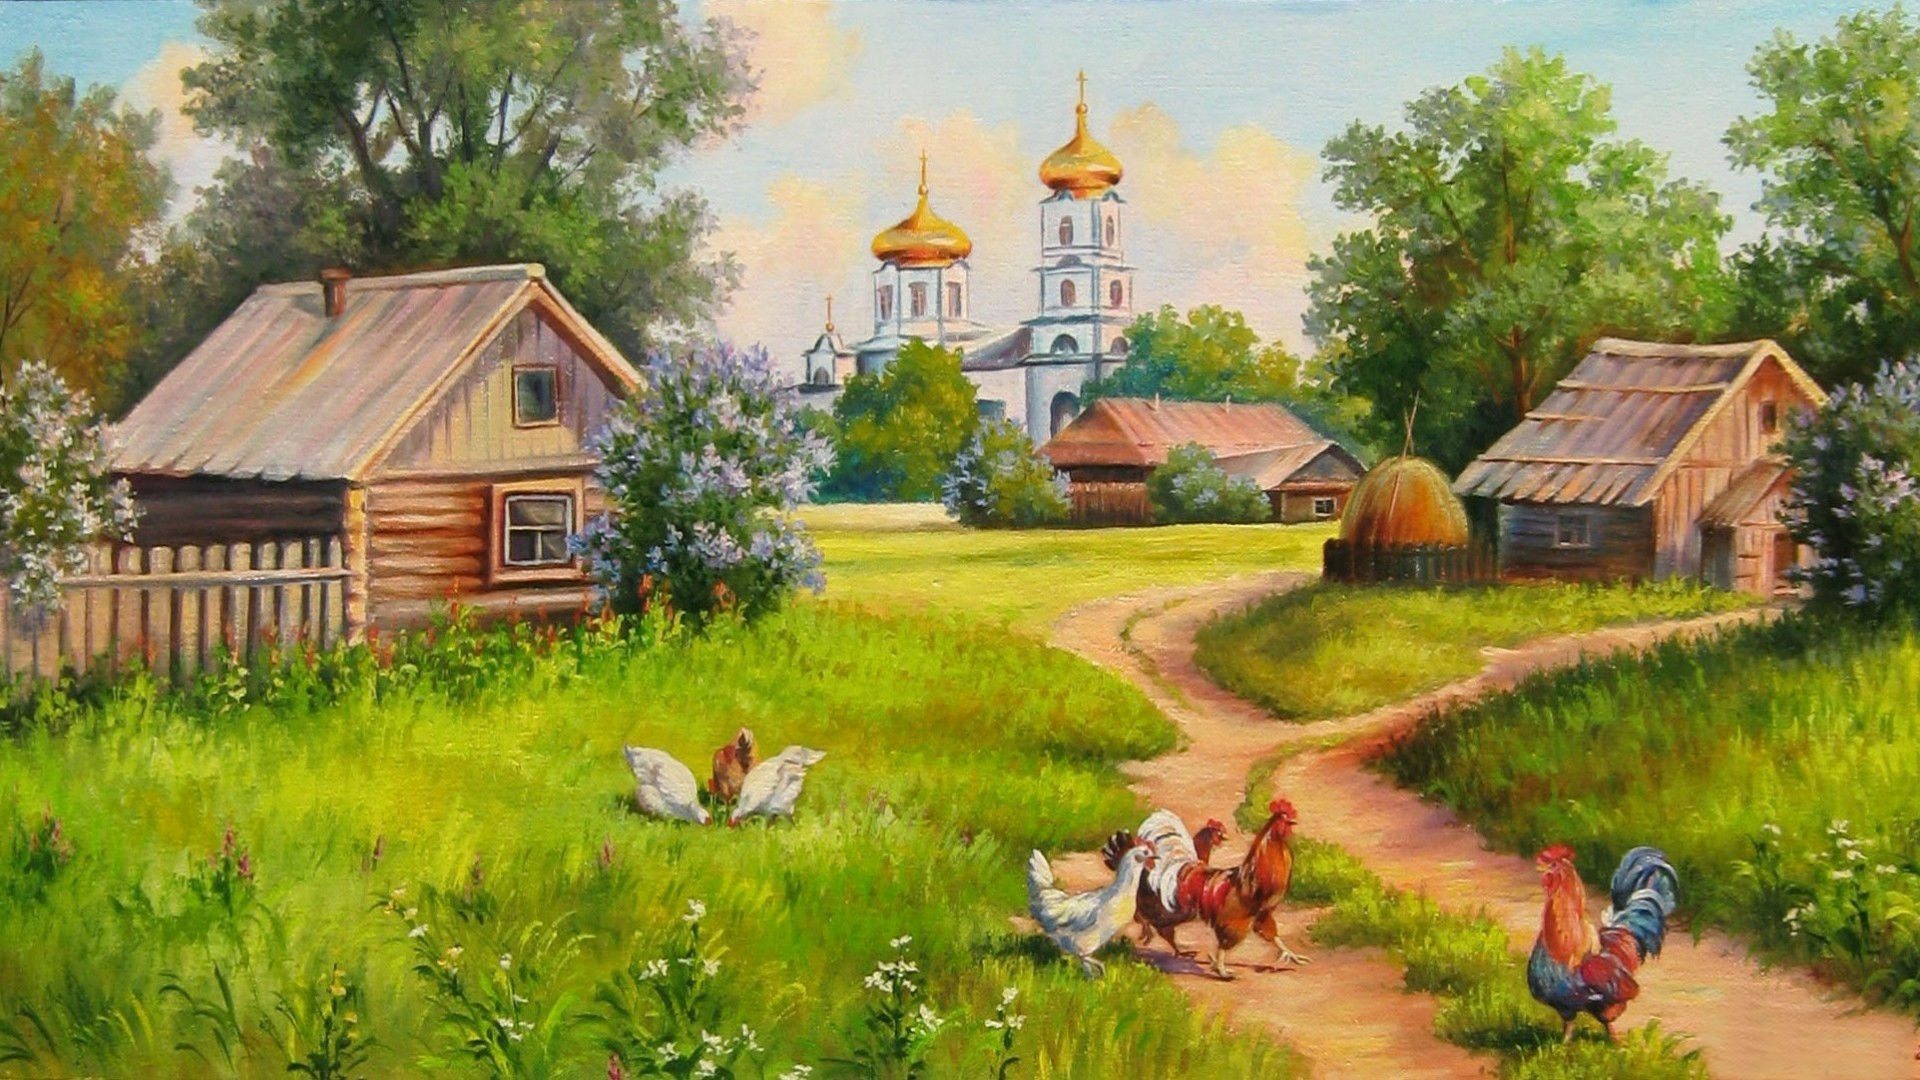 Village Home Wallpaper Wallpapersafari